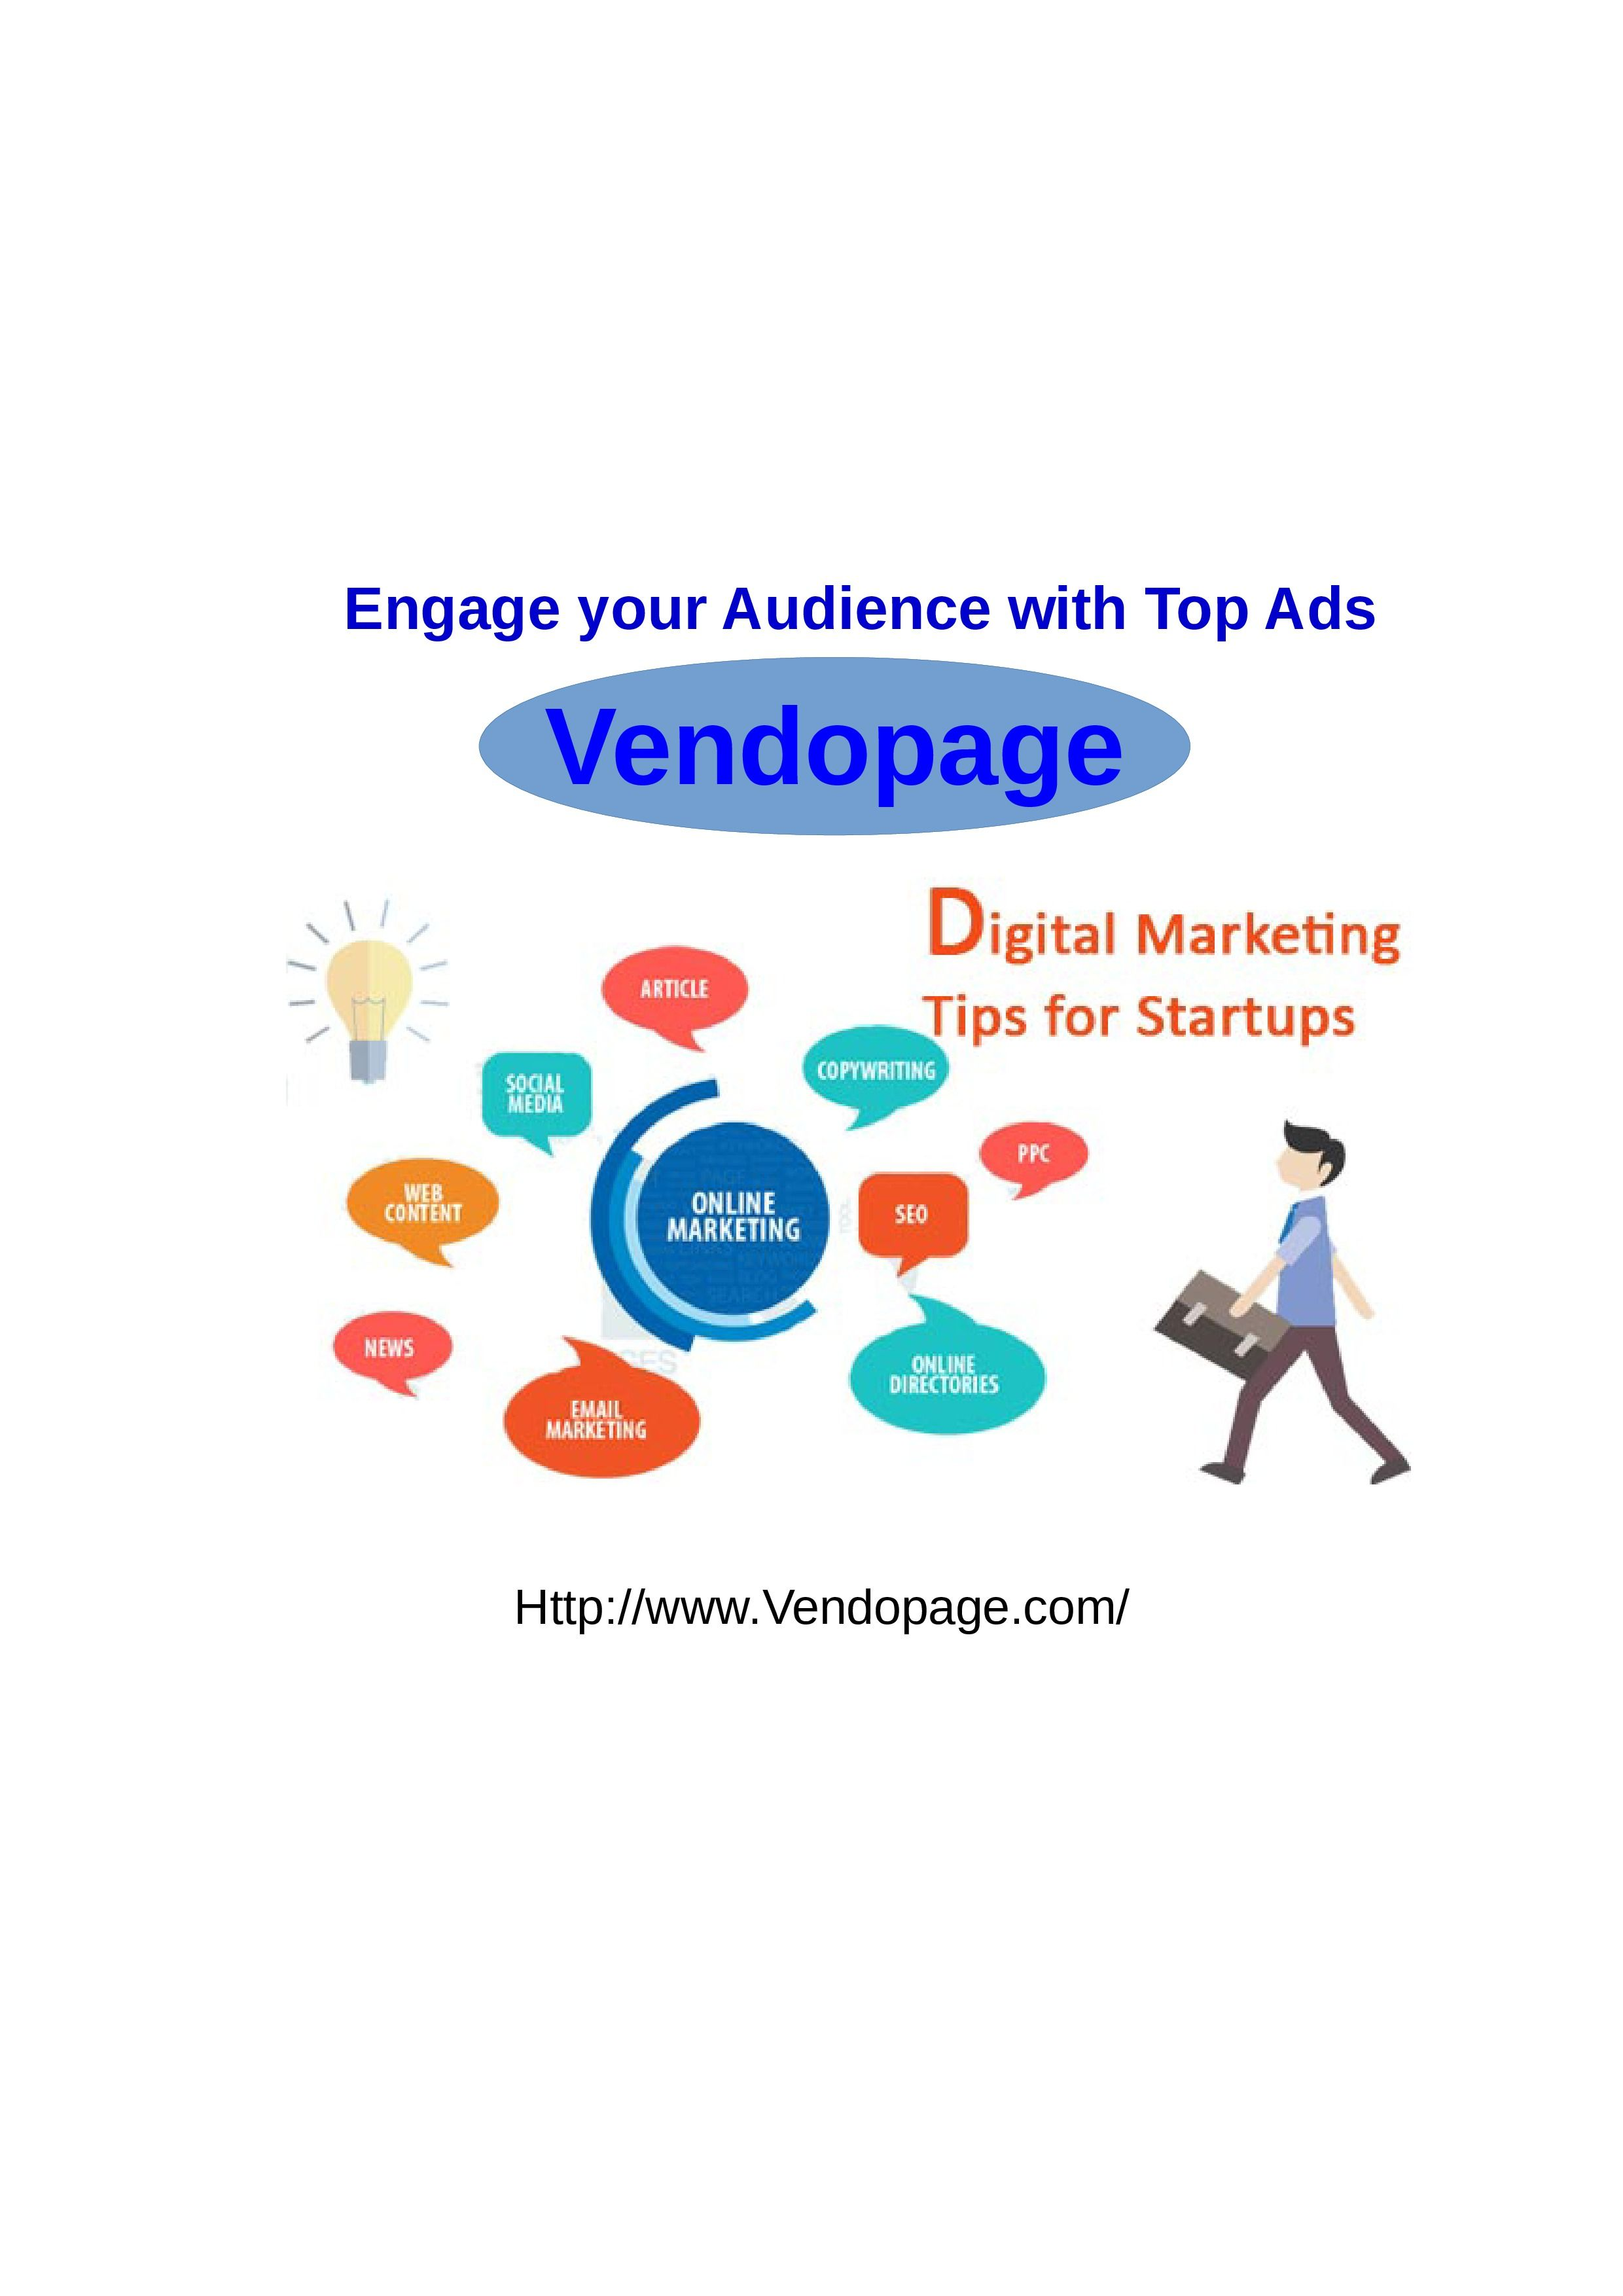 Vendopage is a classifieds site. Our point is to empower